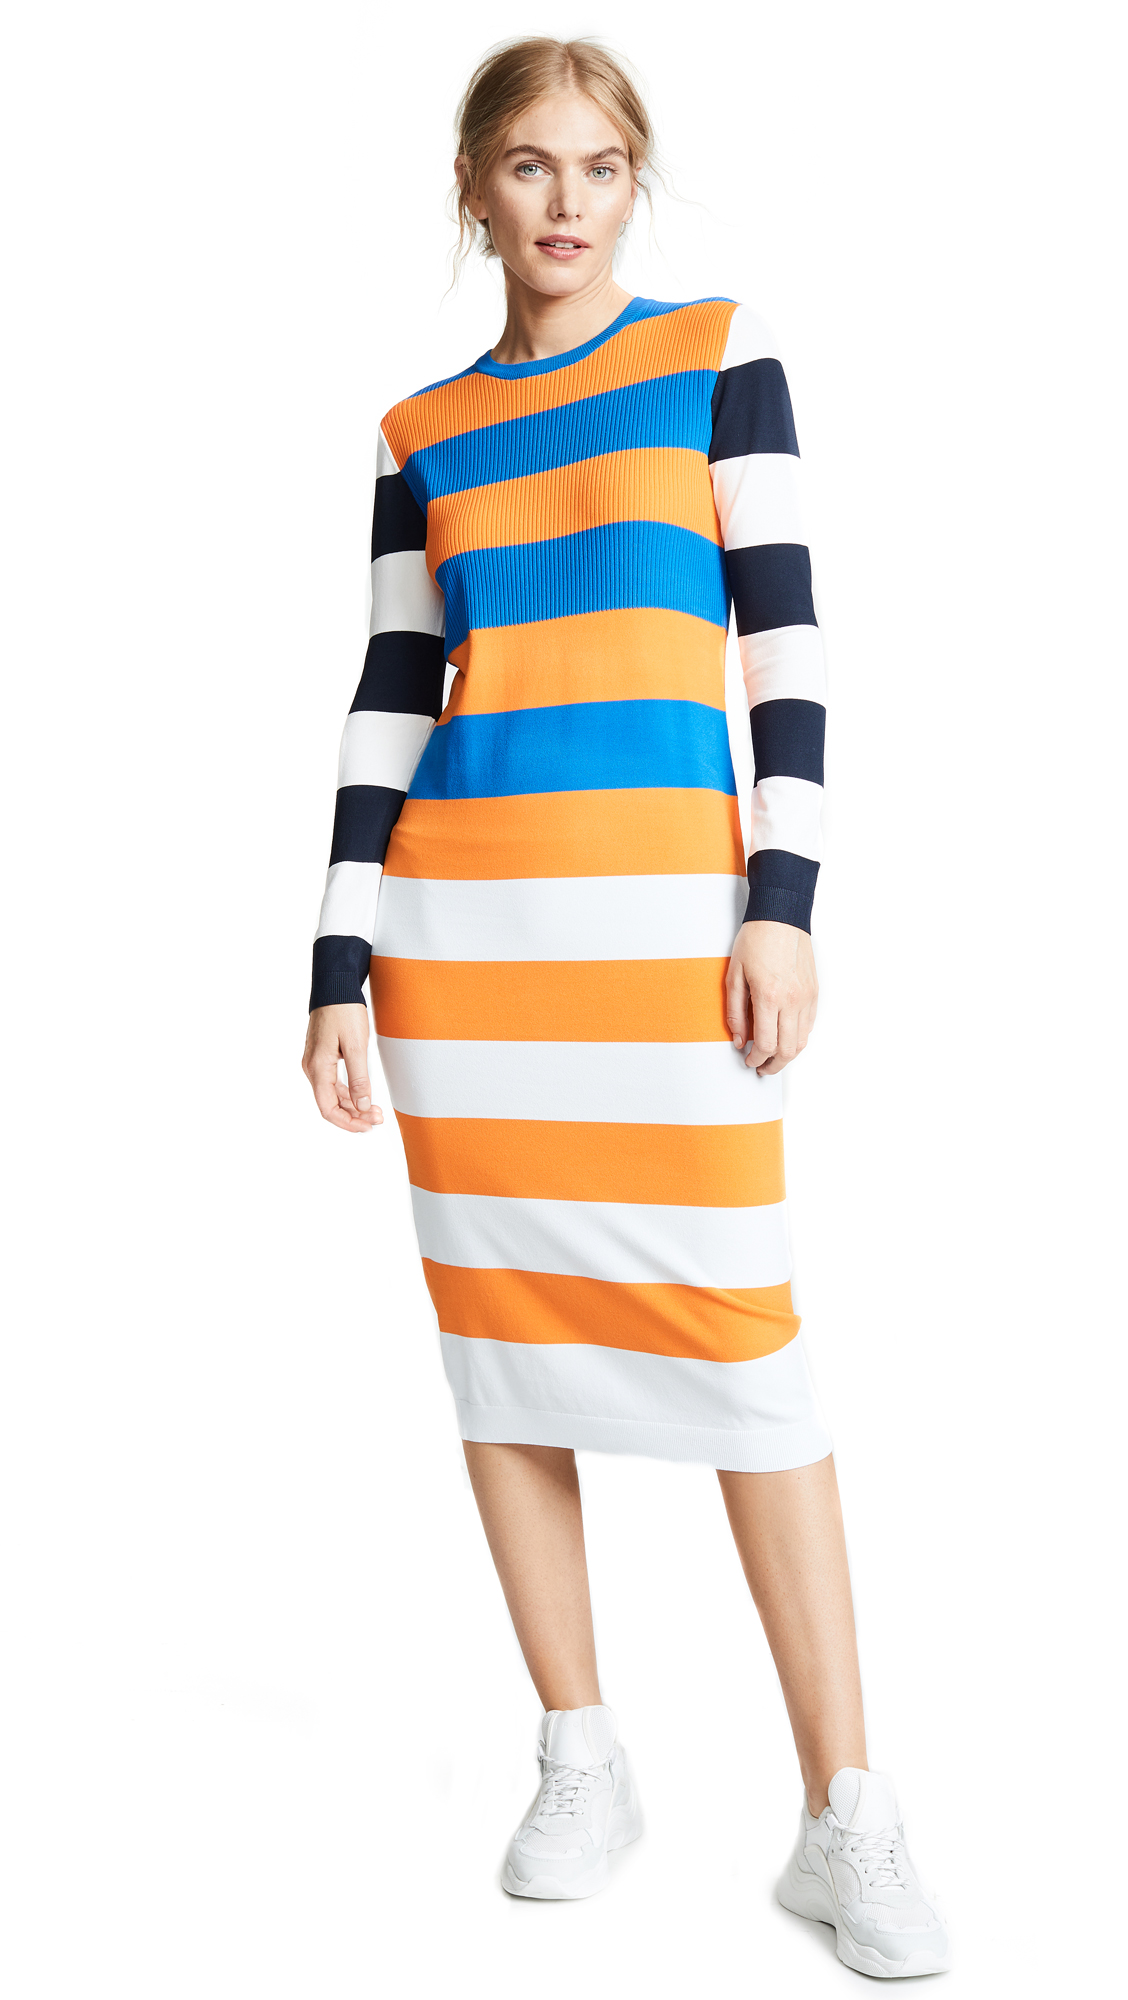 Tory Sport Broad Stripe Tech Knit Dress In Broad Stripe